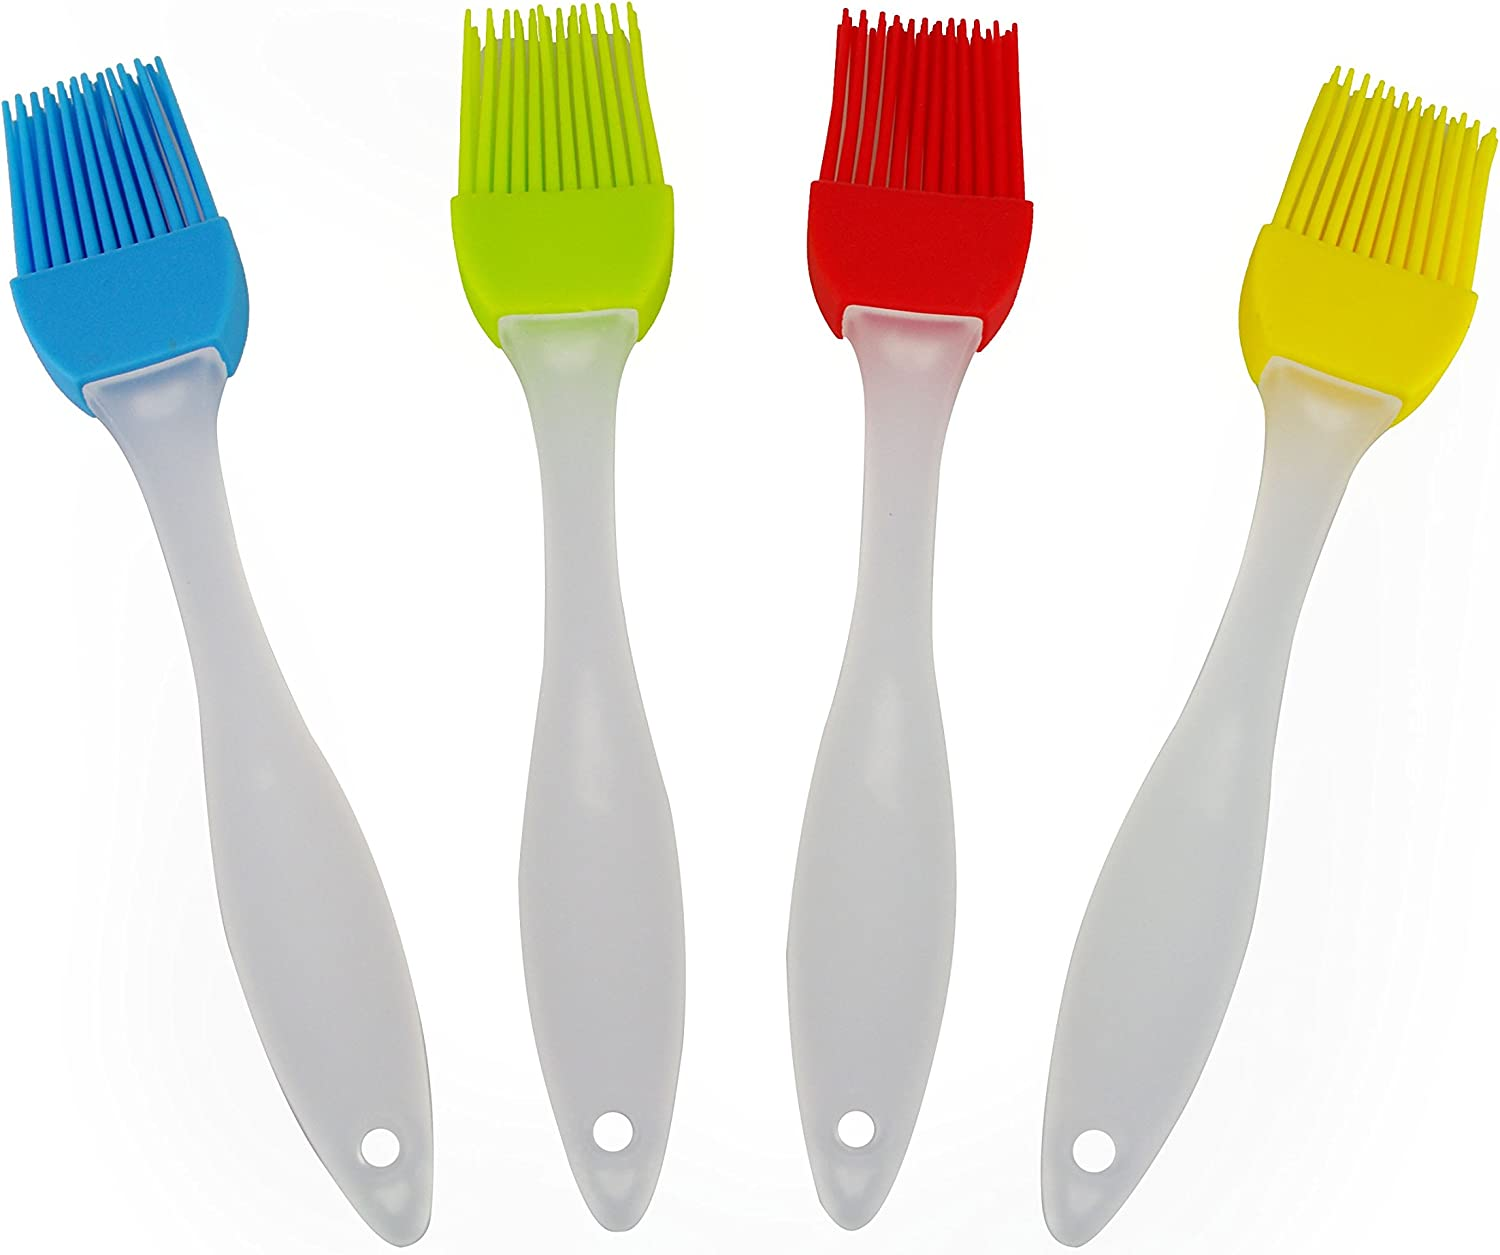 Mirenlife 4-Pack Silicone Basting Brush, Pastry Brush, Grill BBQ Brush, Multi-use Brush, 4 Colors(Red, Yellow, Blue and Green)